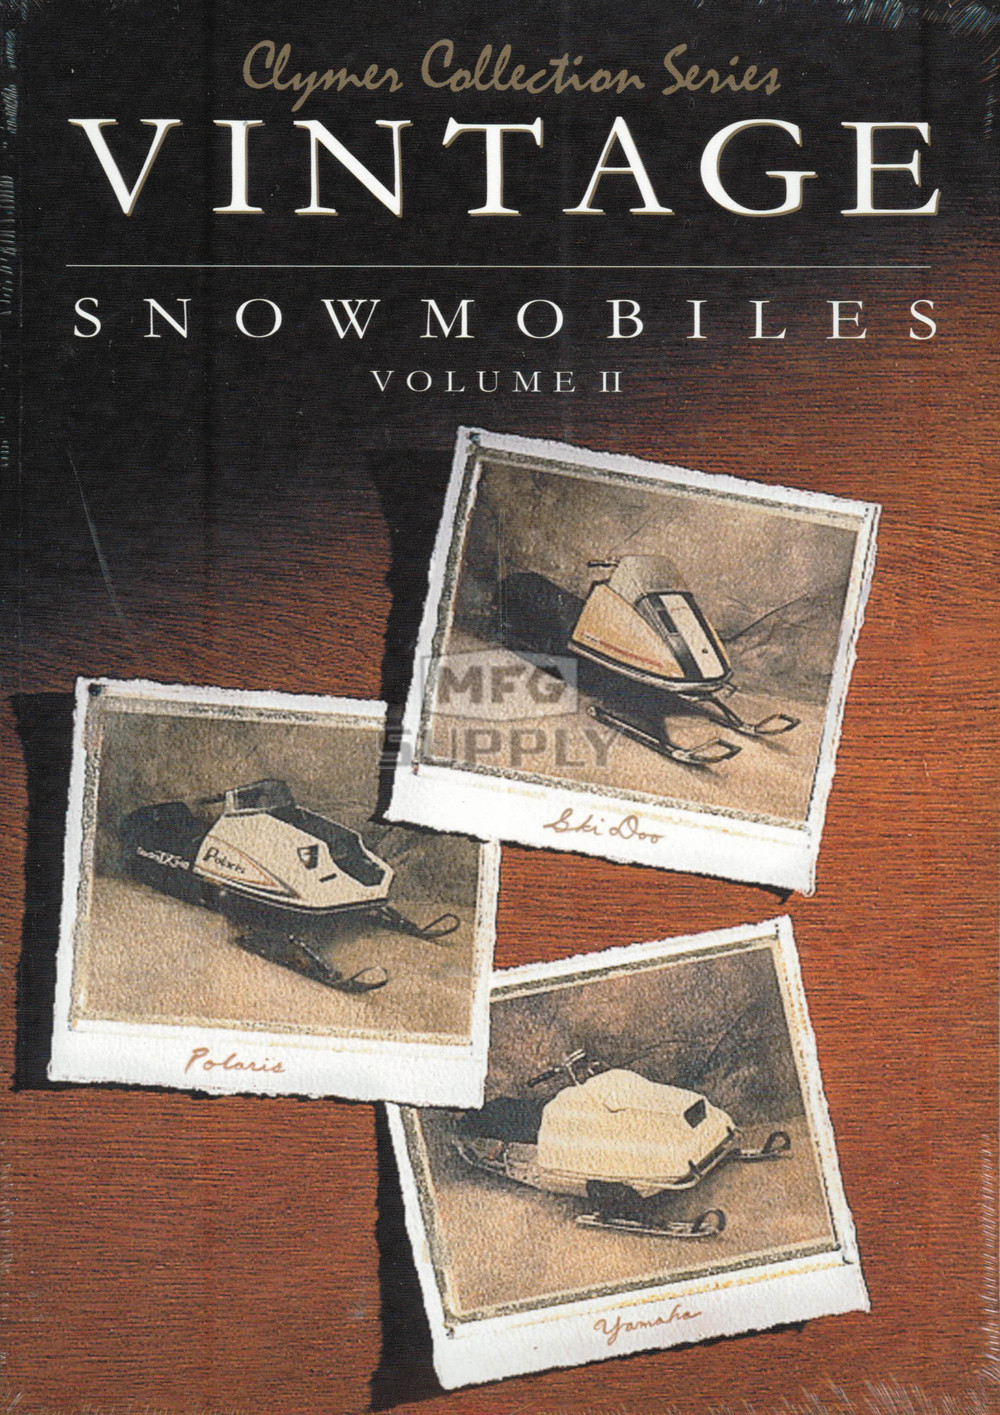 CS821 - Vintage Snowmobile Manual. 73-79 Polaris, 70-79 Ski-